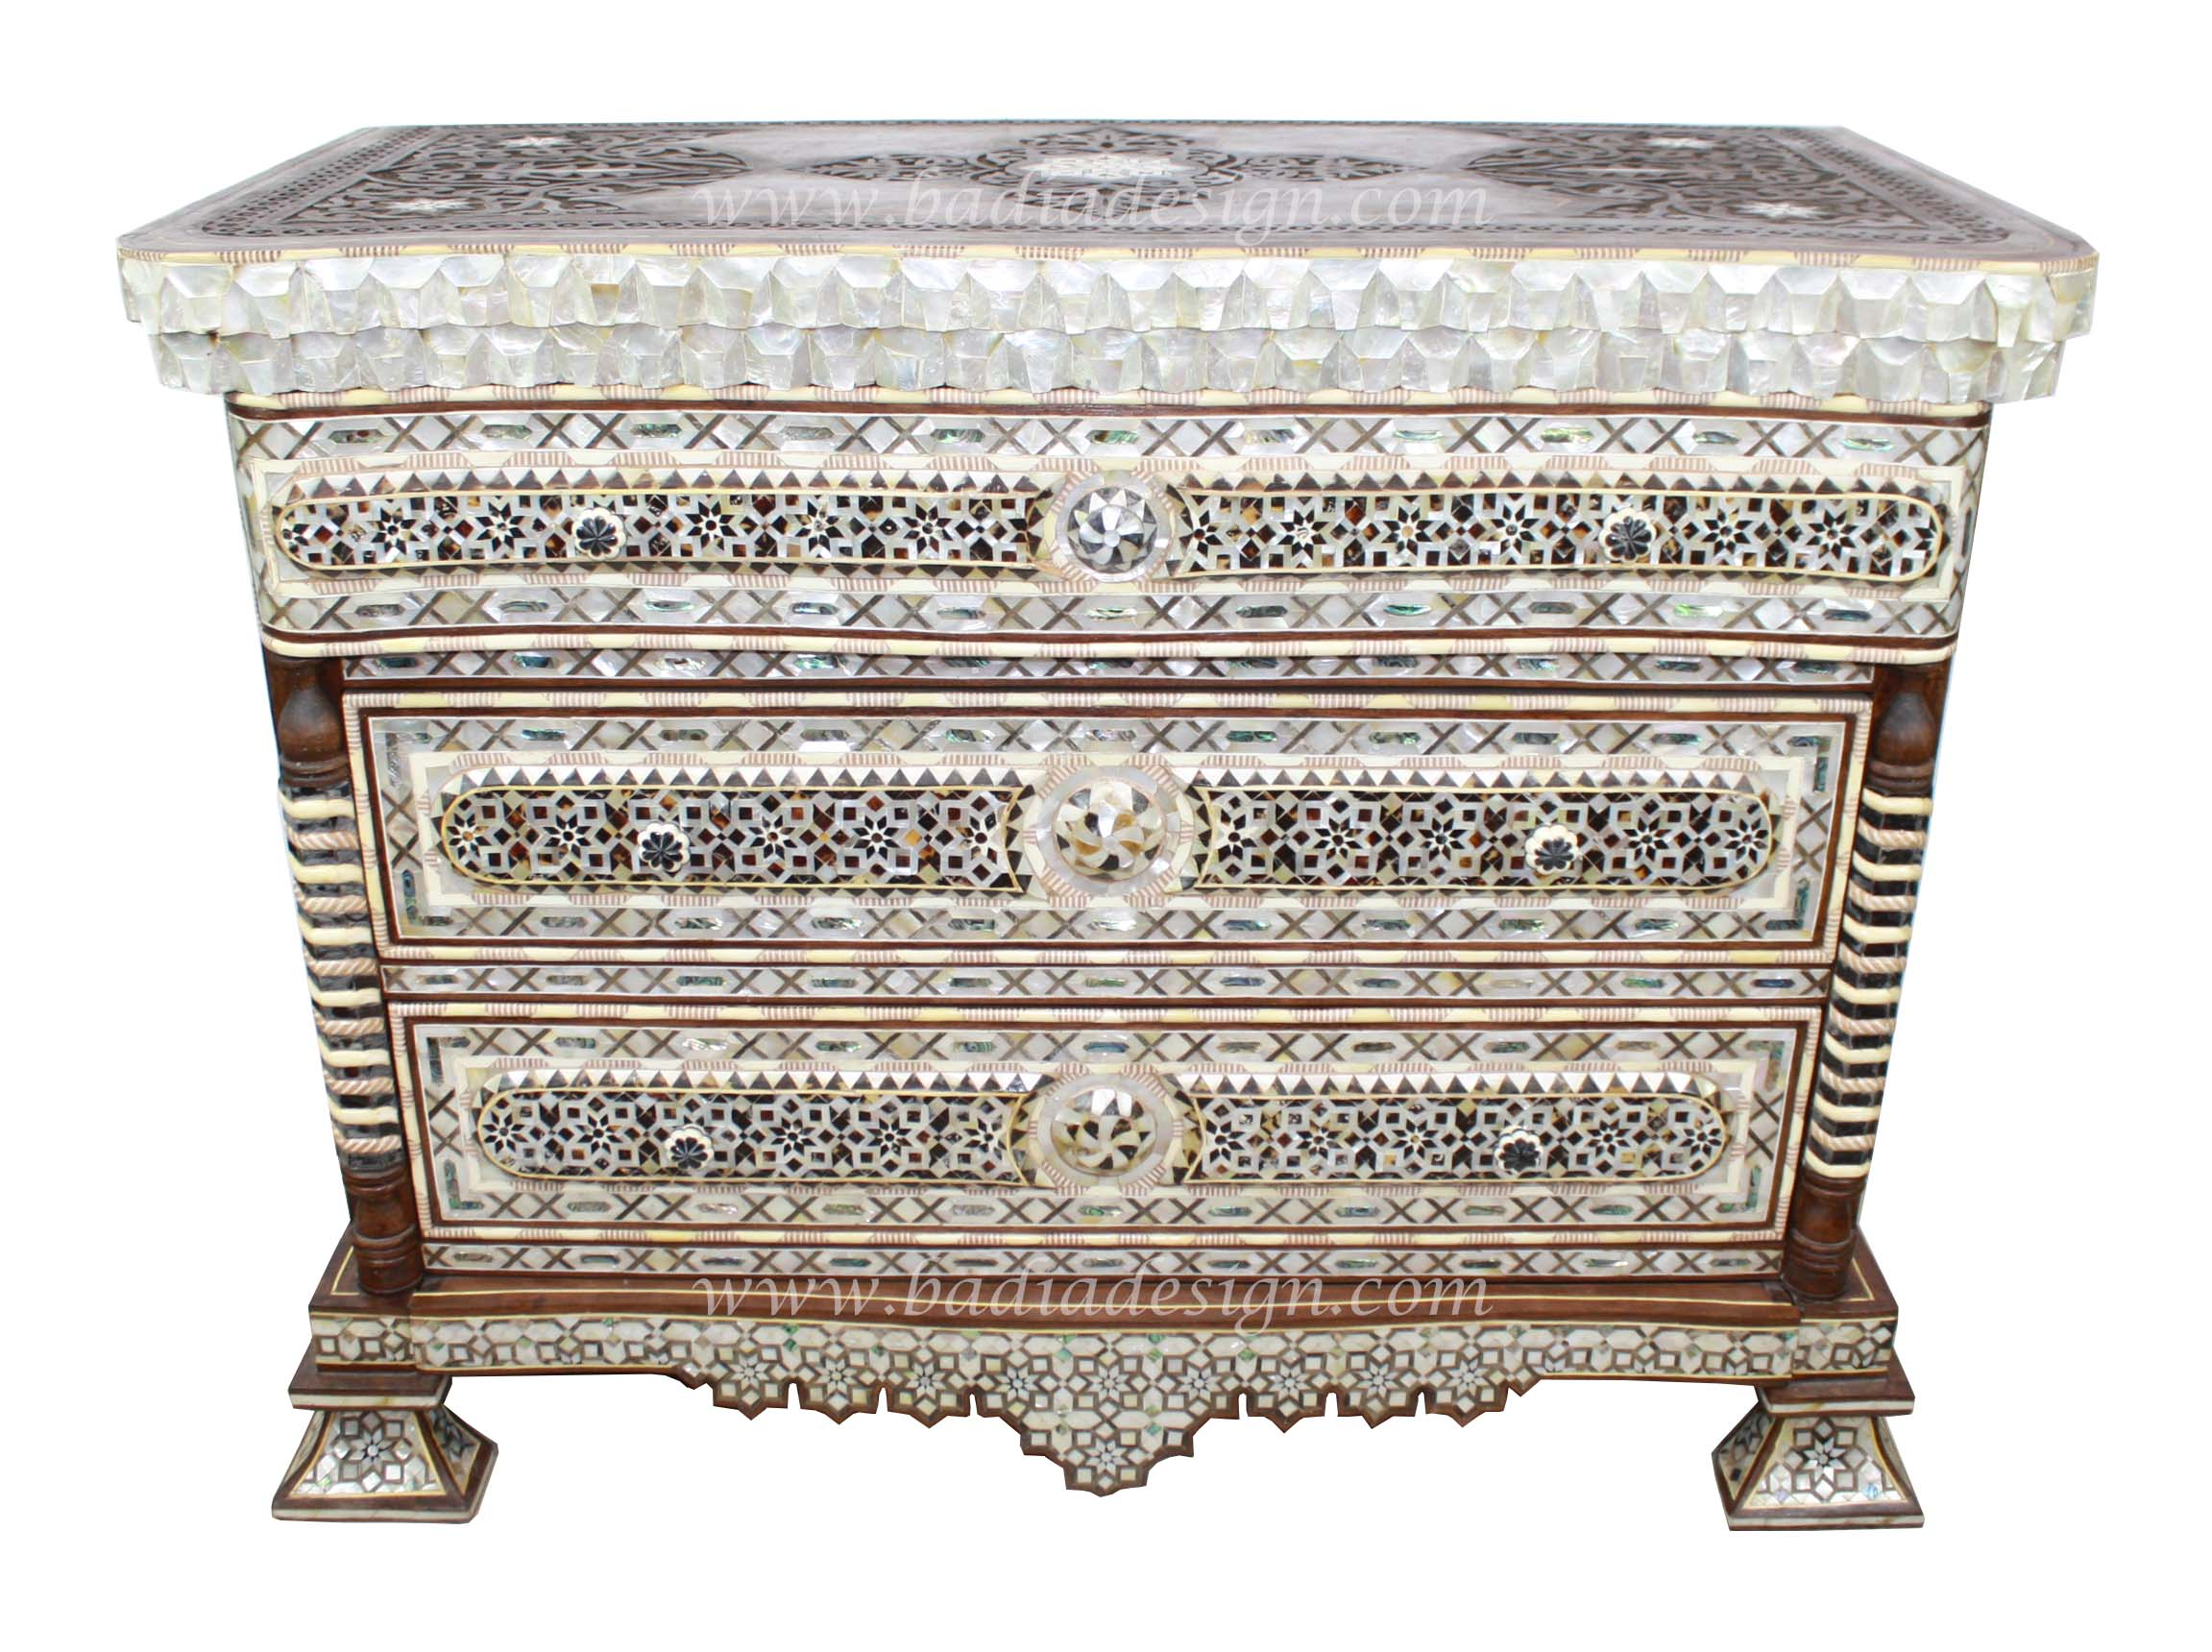 mother-of-pearl-dresser-with-carved-wood-mop-dr051-1.jpg